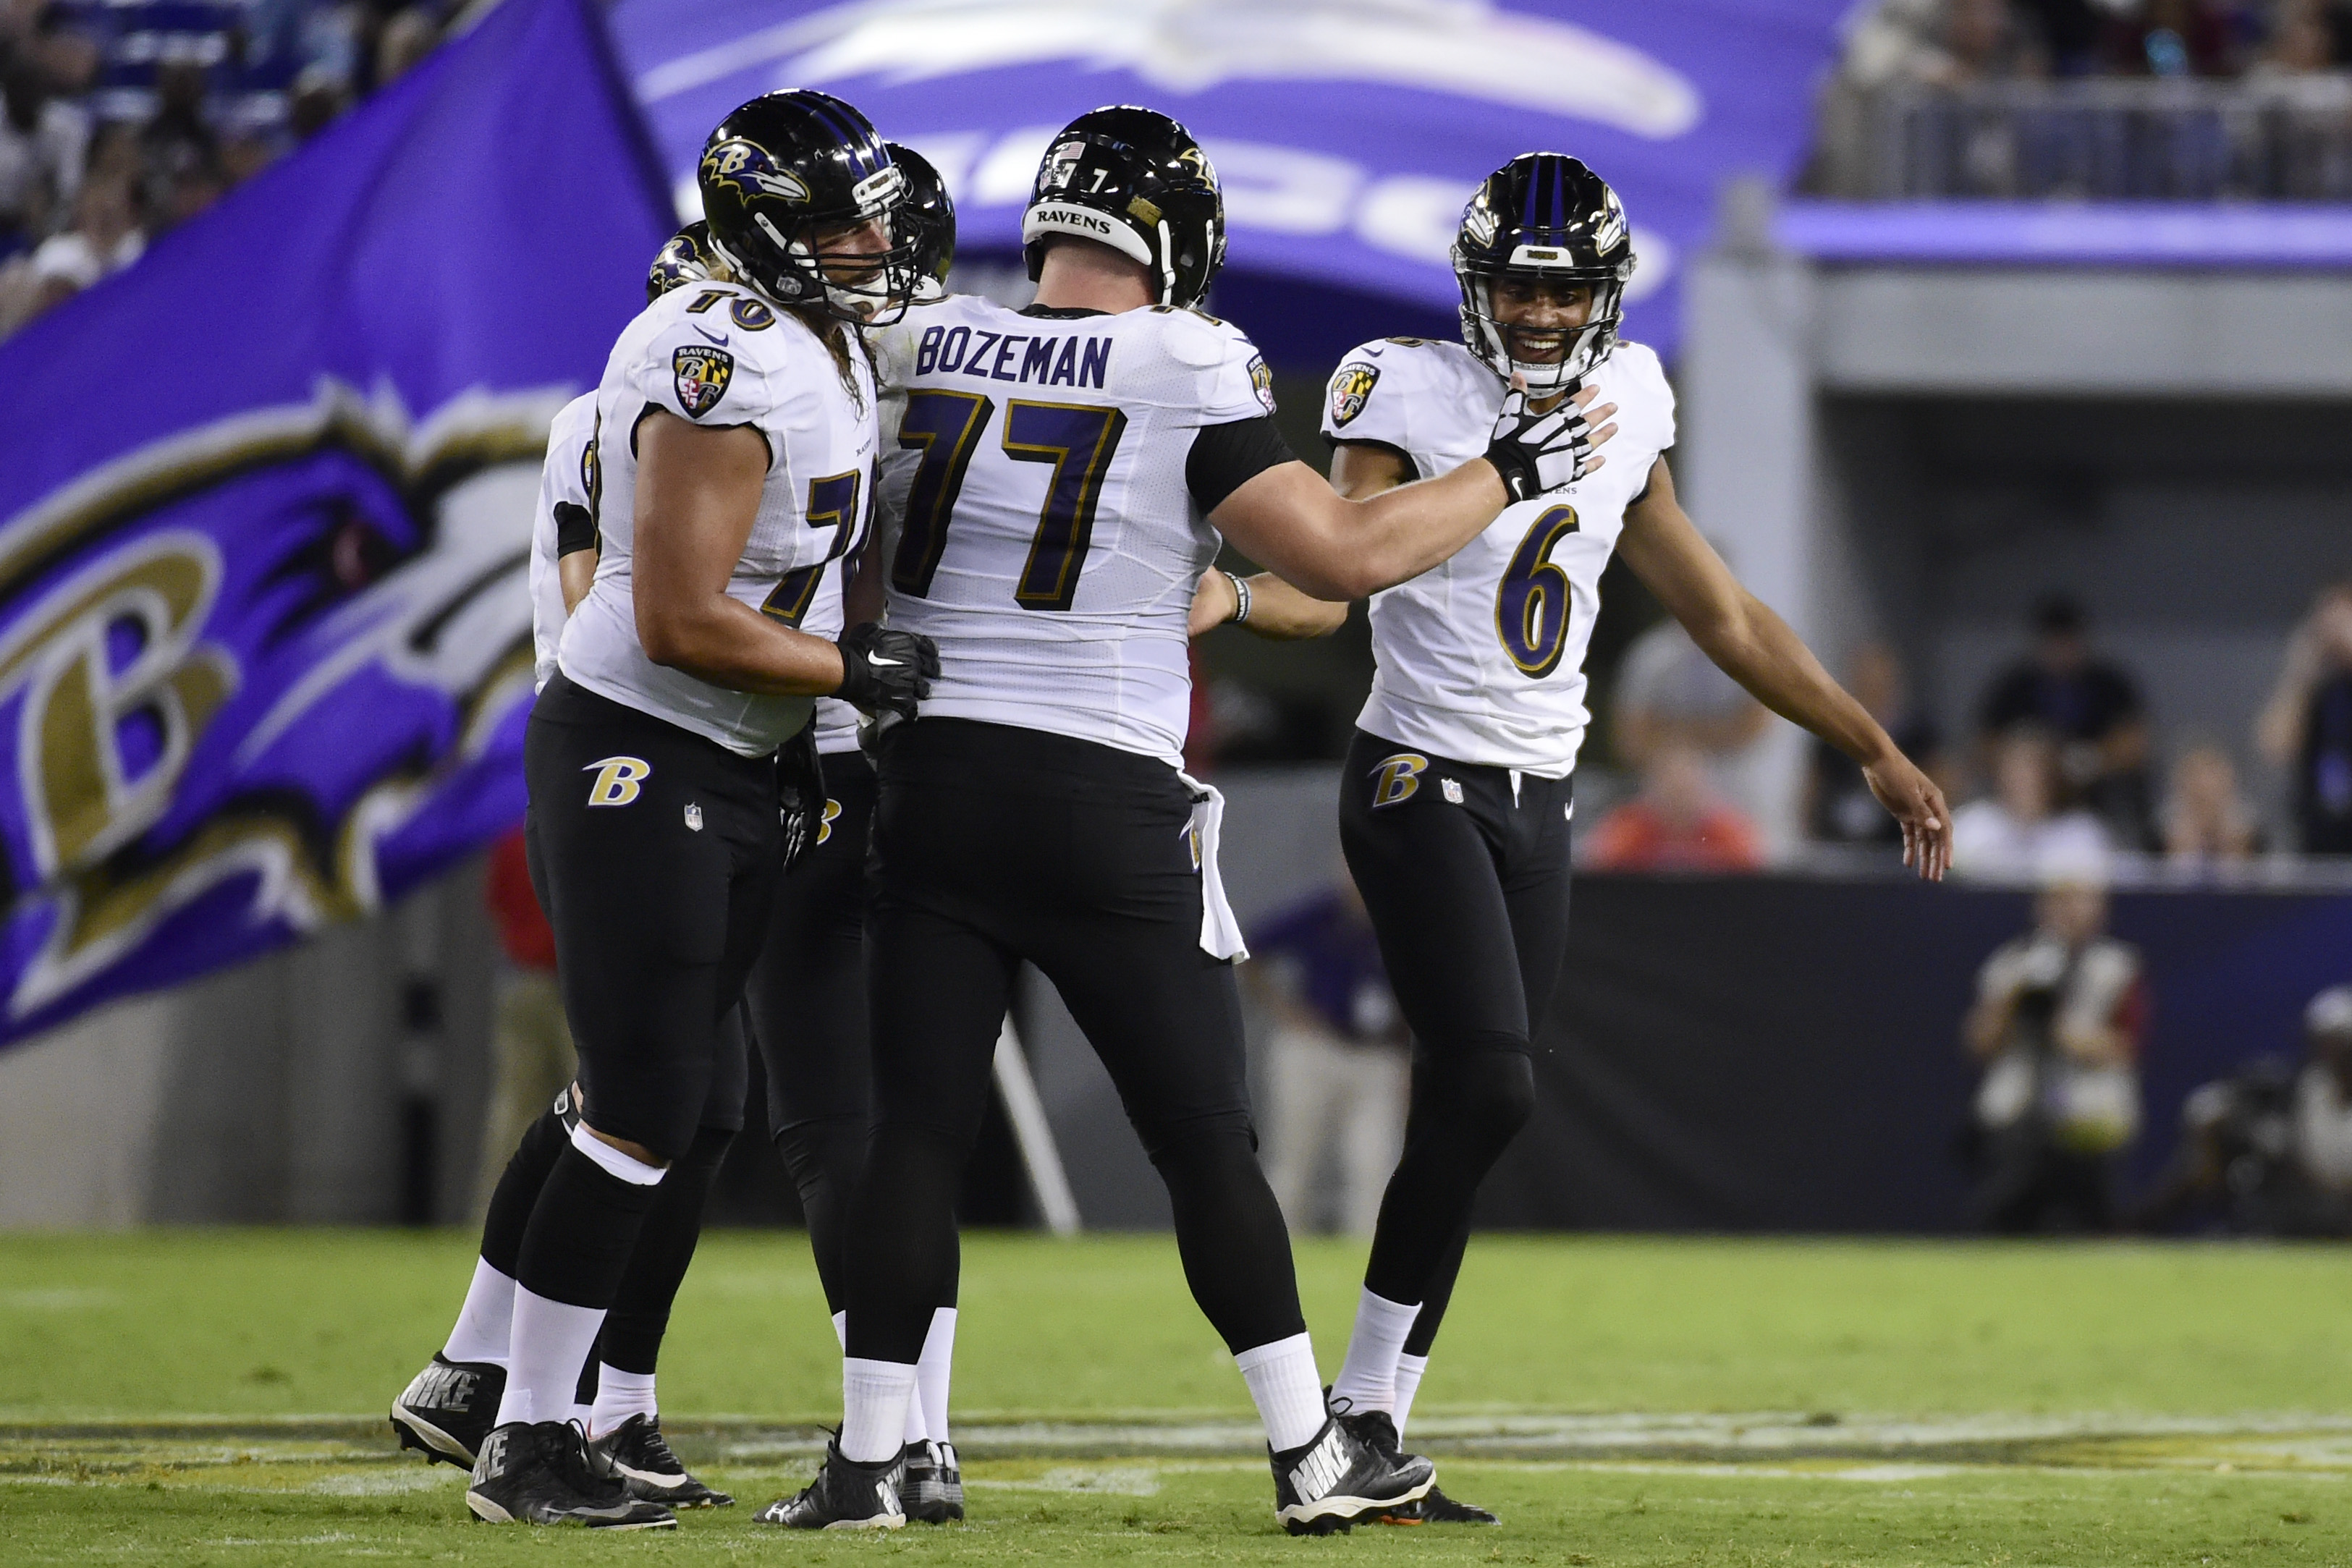 NFL: Washington Redskins at Baltimore Ravens